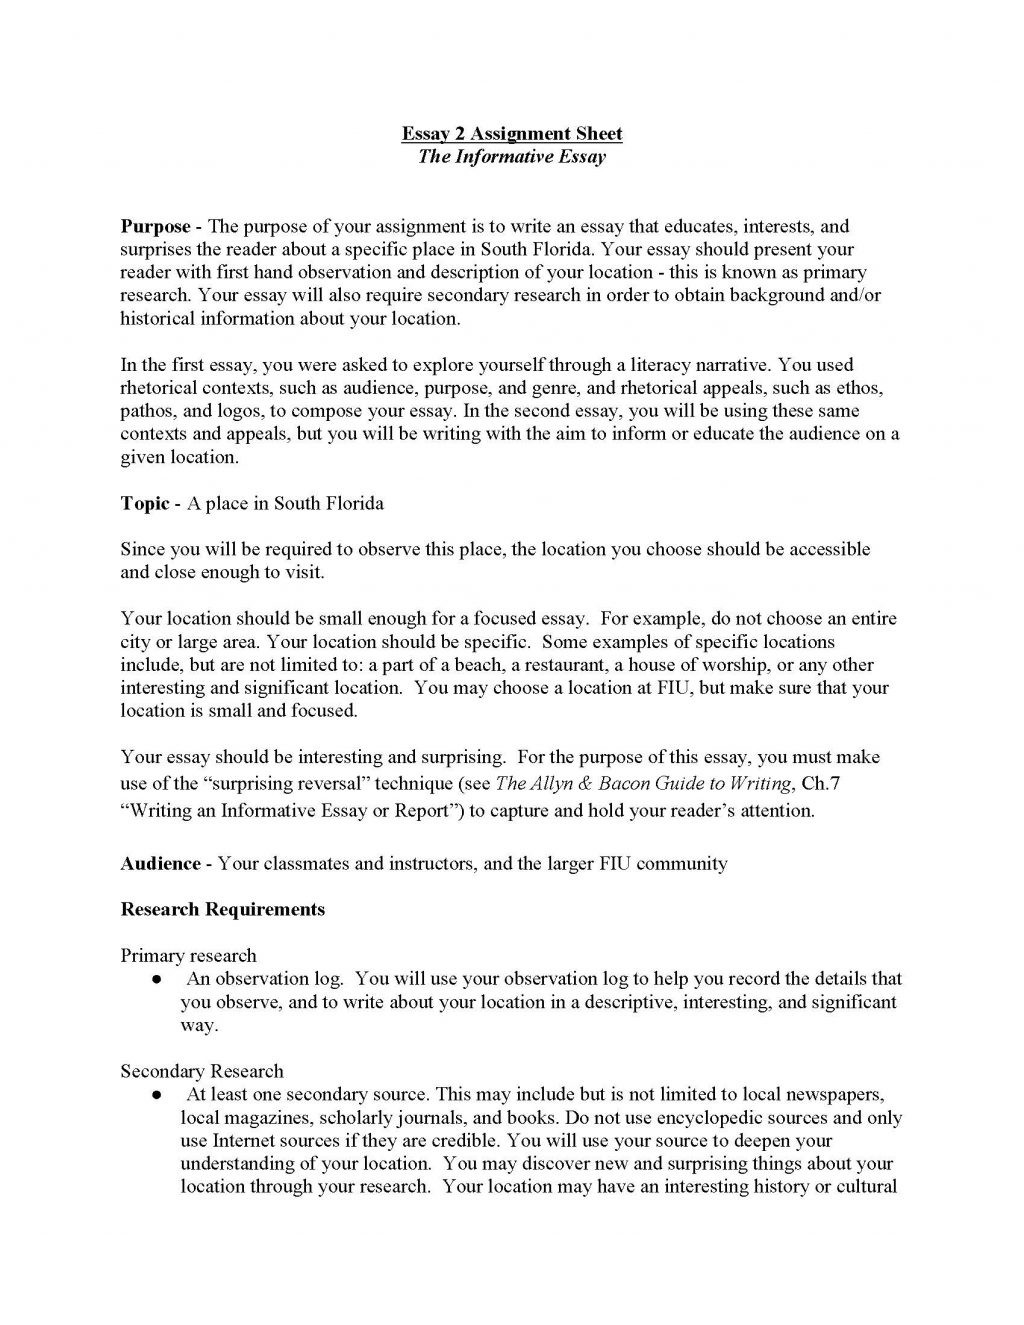 020 Research Paper Informative Essay Topics For High School Prompt 4th Grade Expository 6th College20 1024x1325 Excellent Students Topic Large